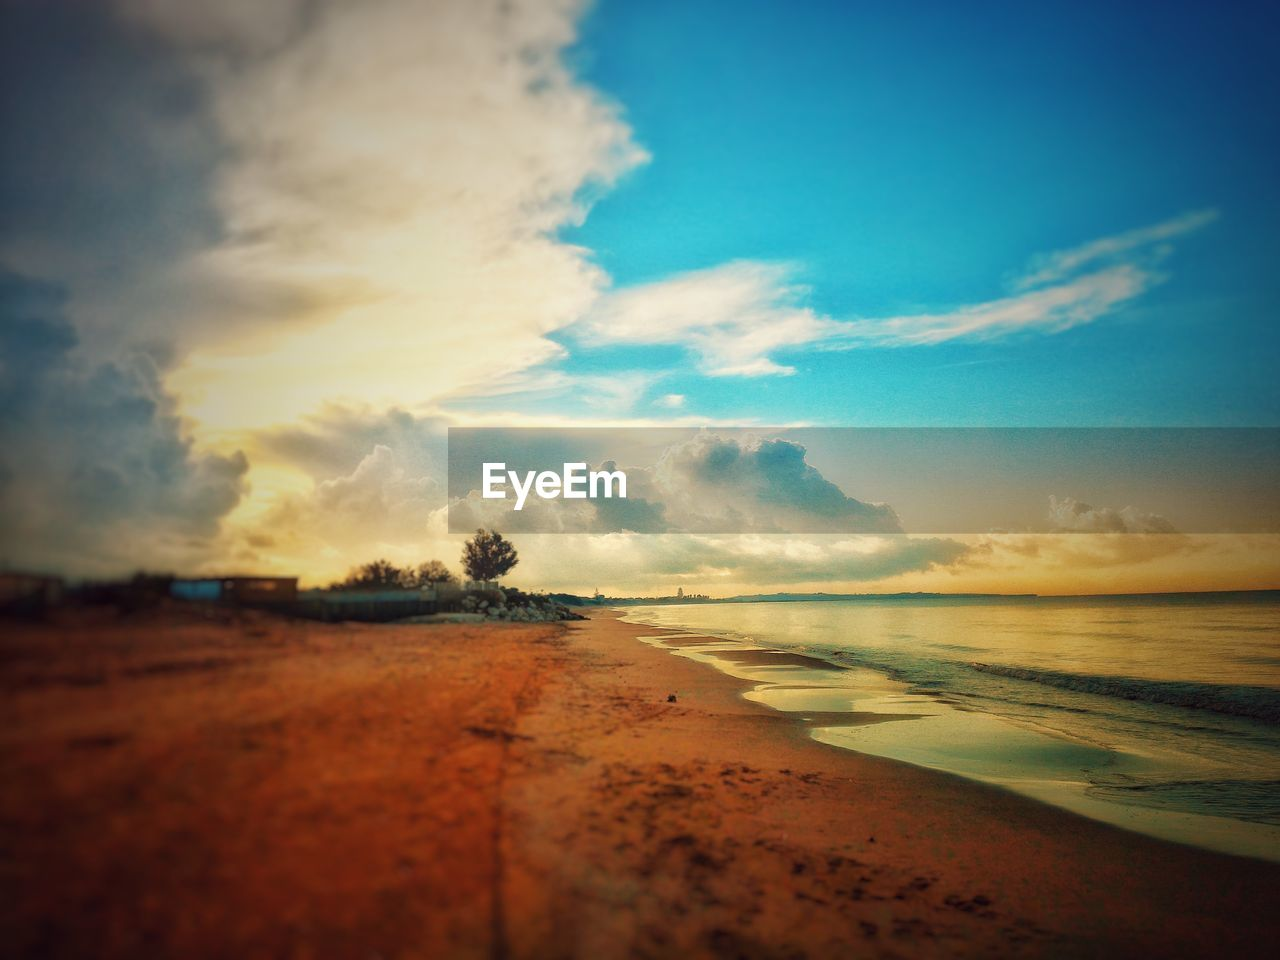 sea, sky, beach, scenics, sunset, beauty in nature, cloud - sky, tranquility, tranquil scene, nature, sand, water, horizon over water, outdoors, no people, travel destinations, vacations, day